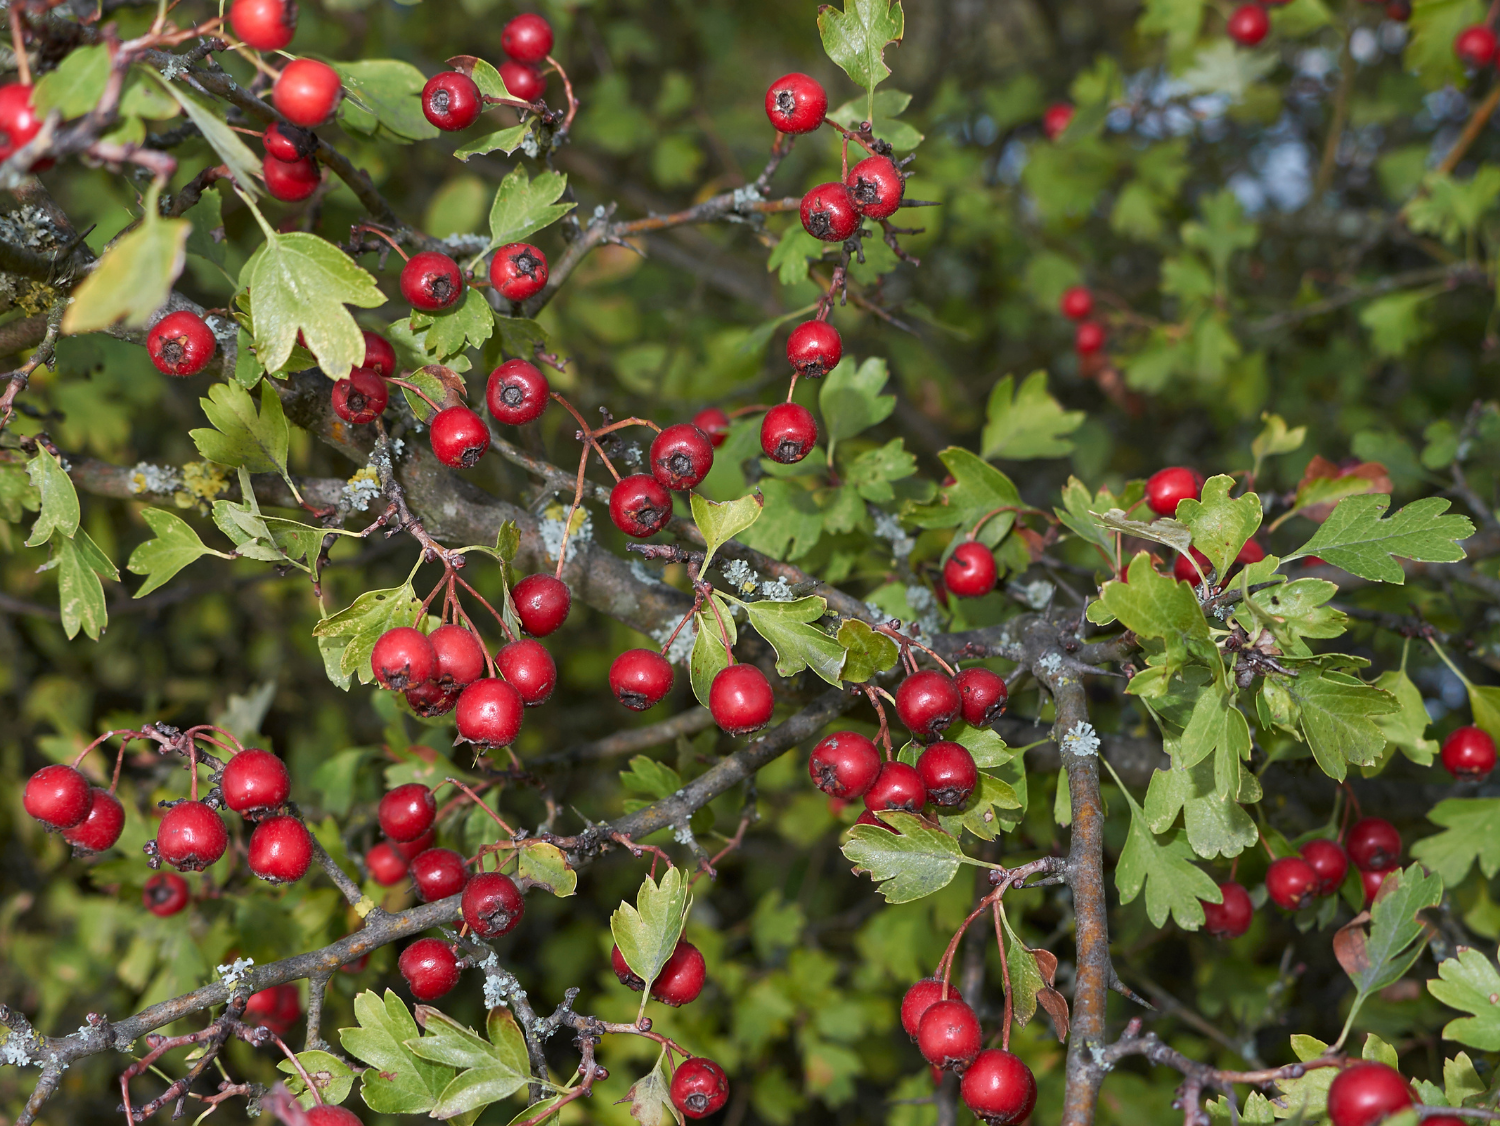 Hawthorn - A Foraging Guide to Its Food, Medicine and Other Uses